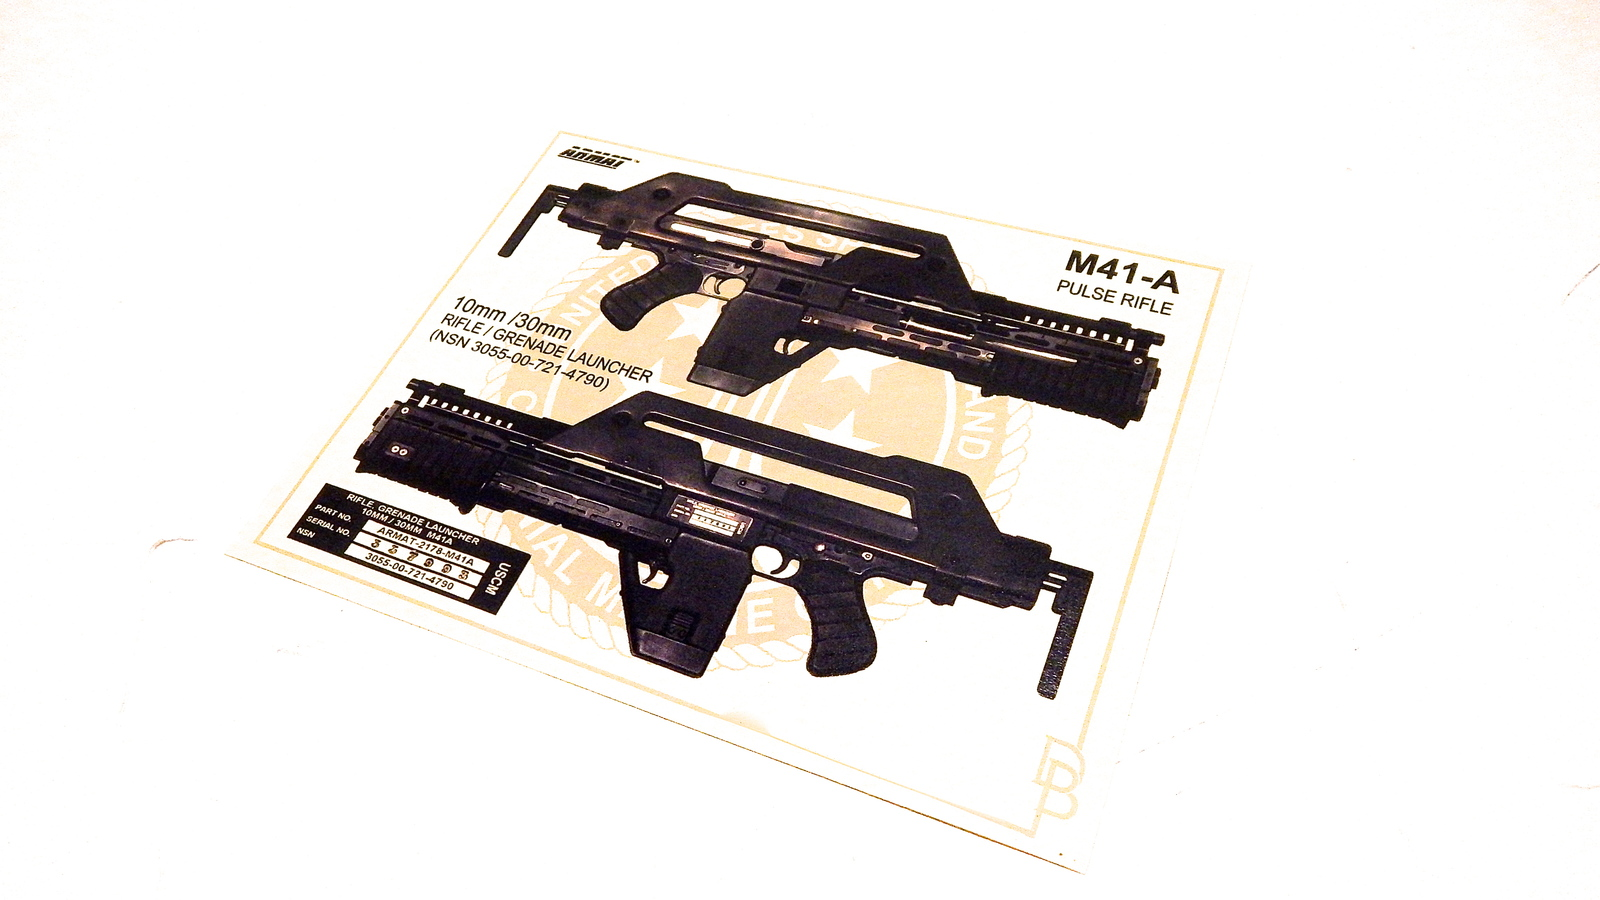 Aliens M41-A Pulse Rifle Display Card Poster and 50 similar